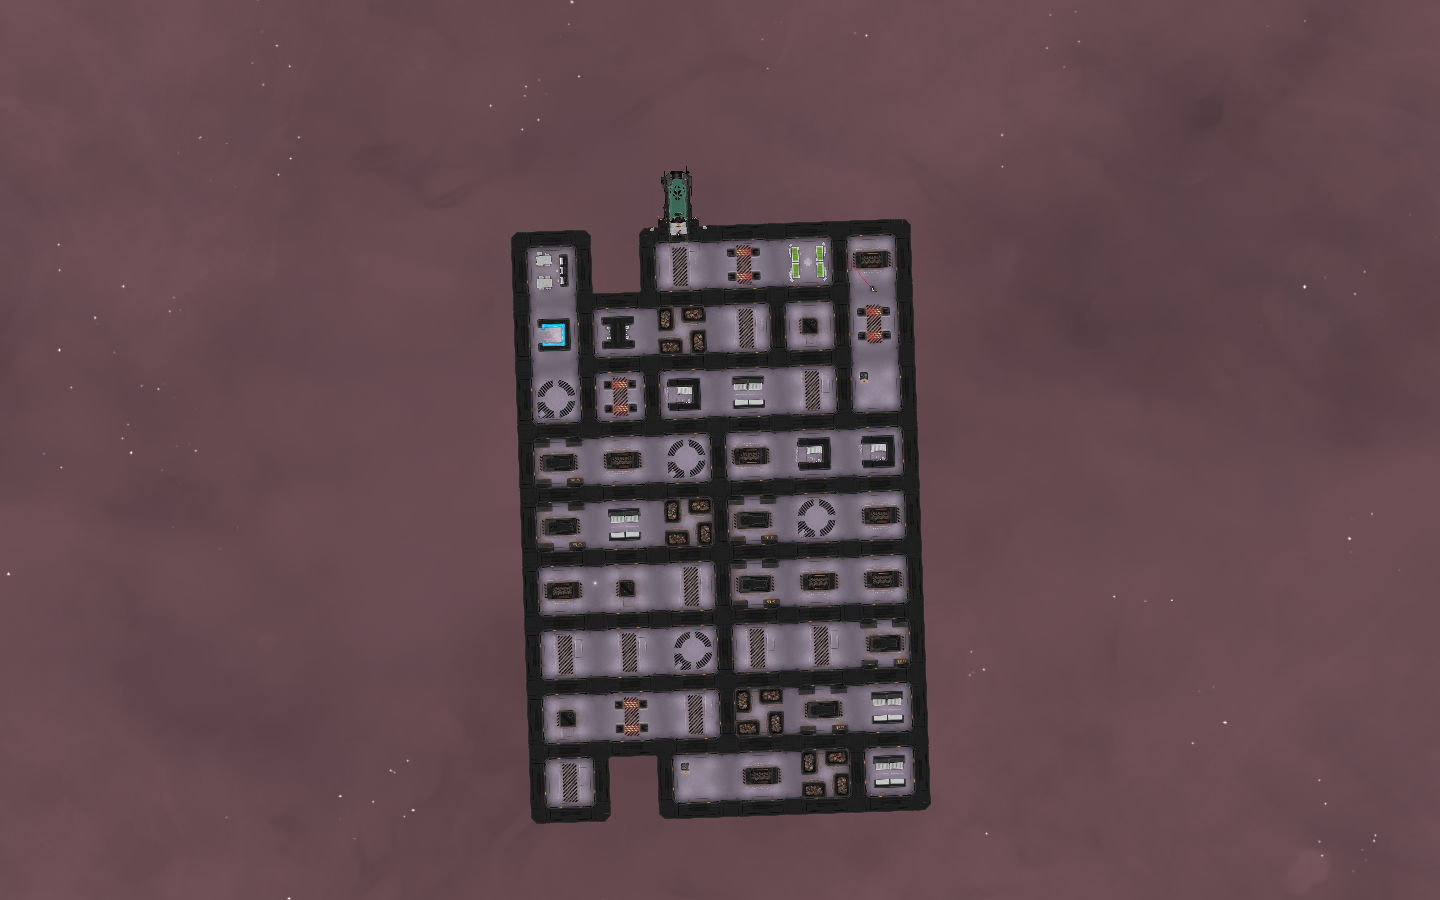 Runner 2015-11-10 18-36-05-72 first ship made of sectors